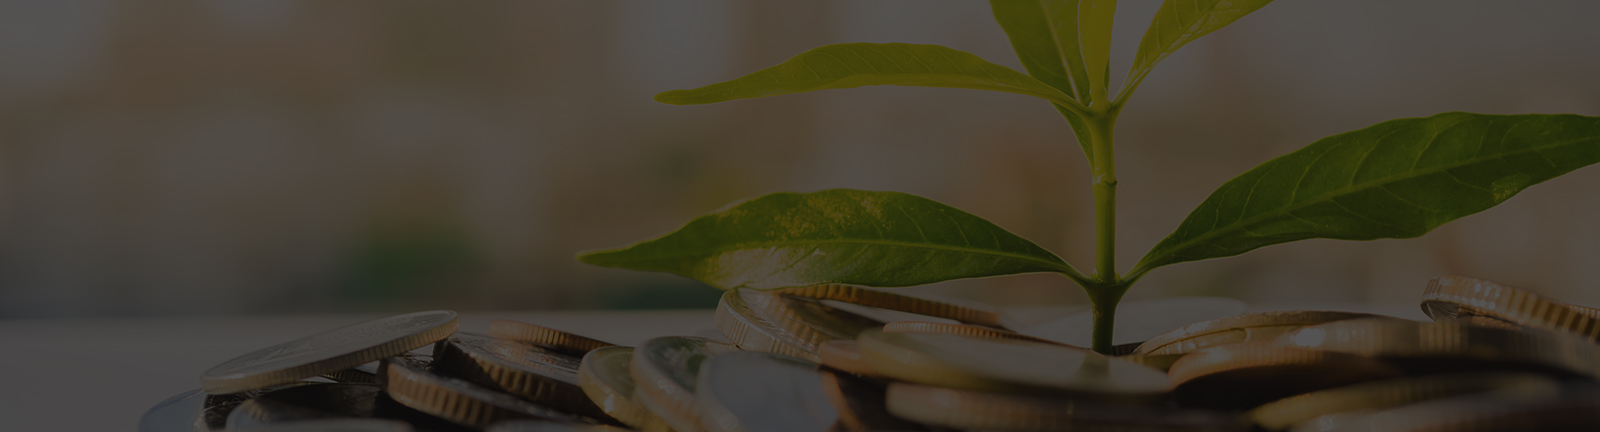 Is ESG investing the next big thing?